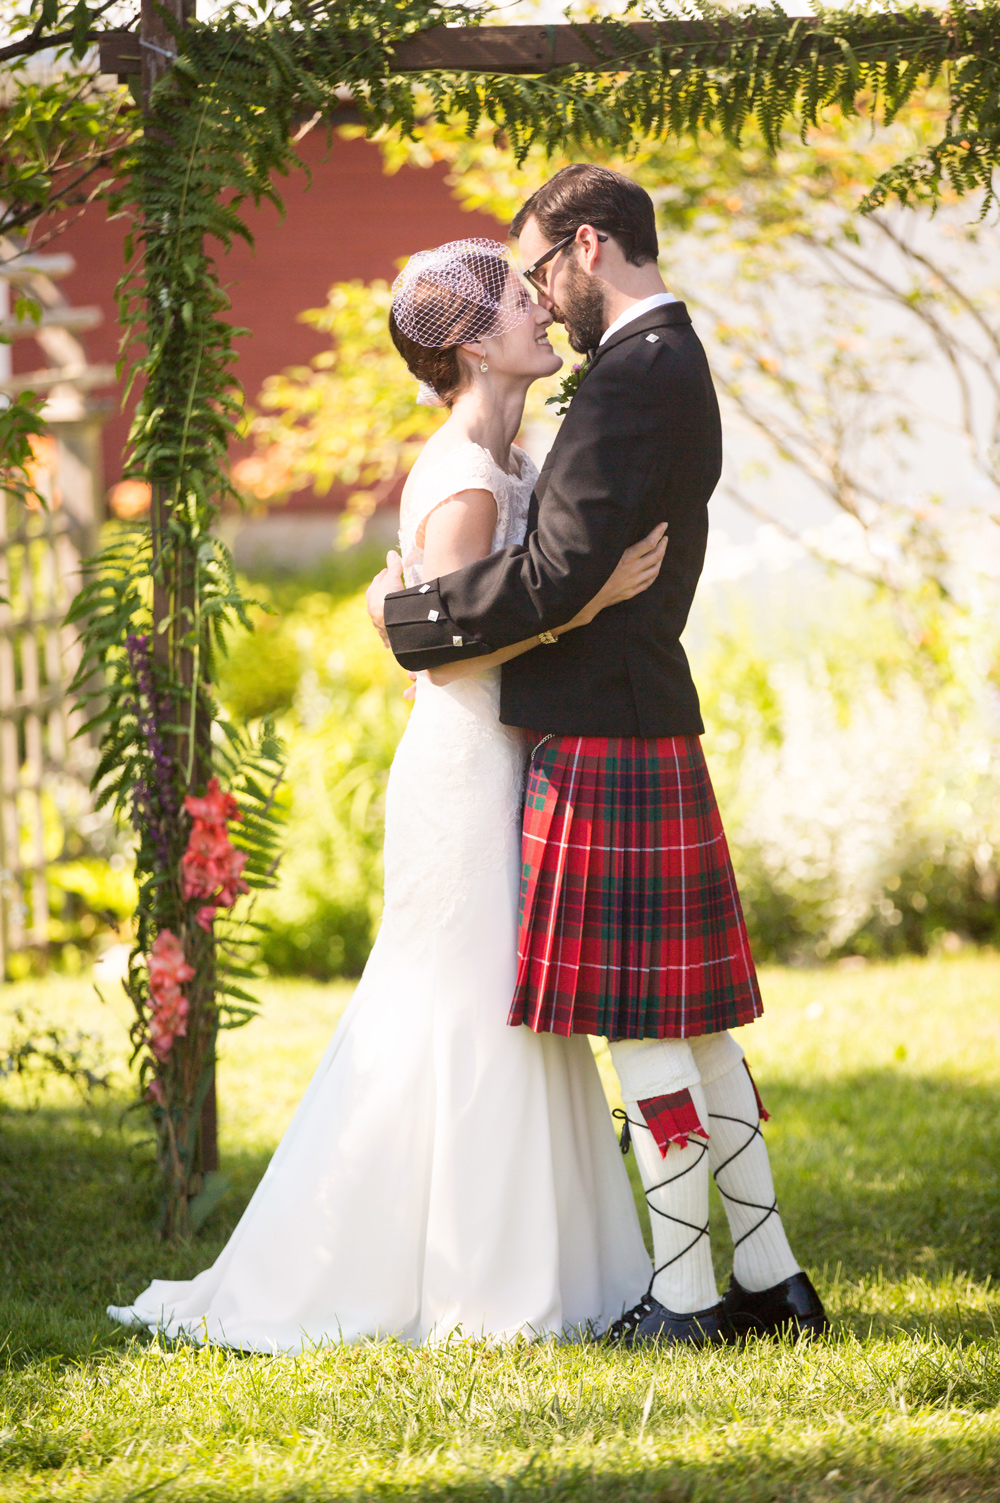 429-nova-scotia-kilt-wedding.jpg